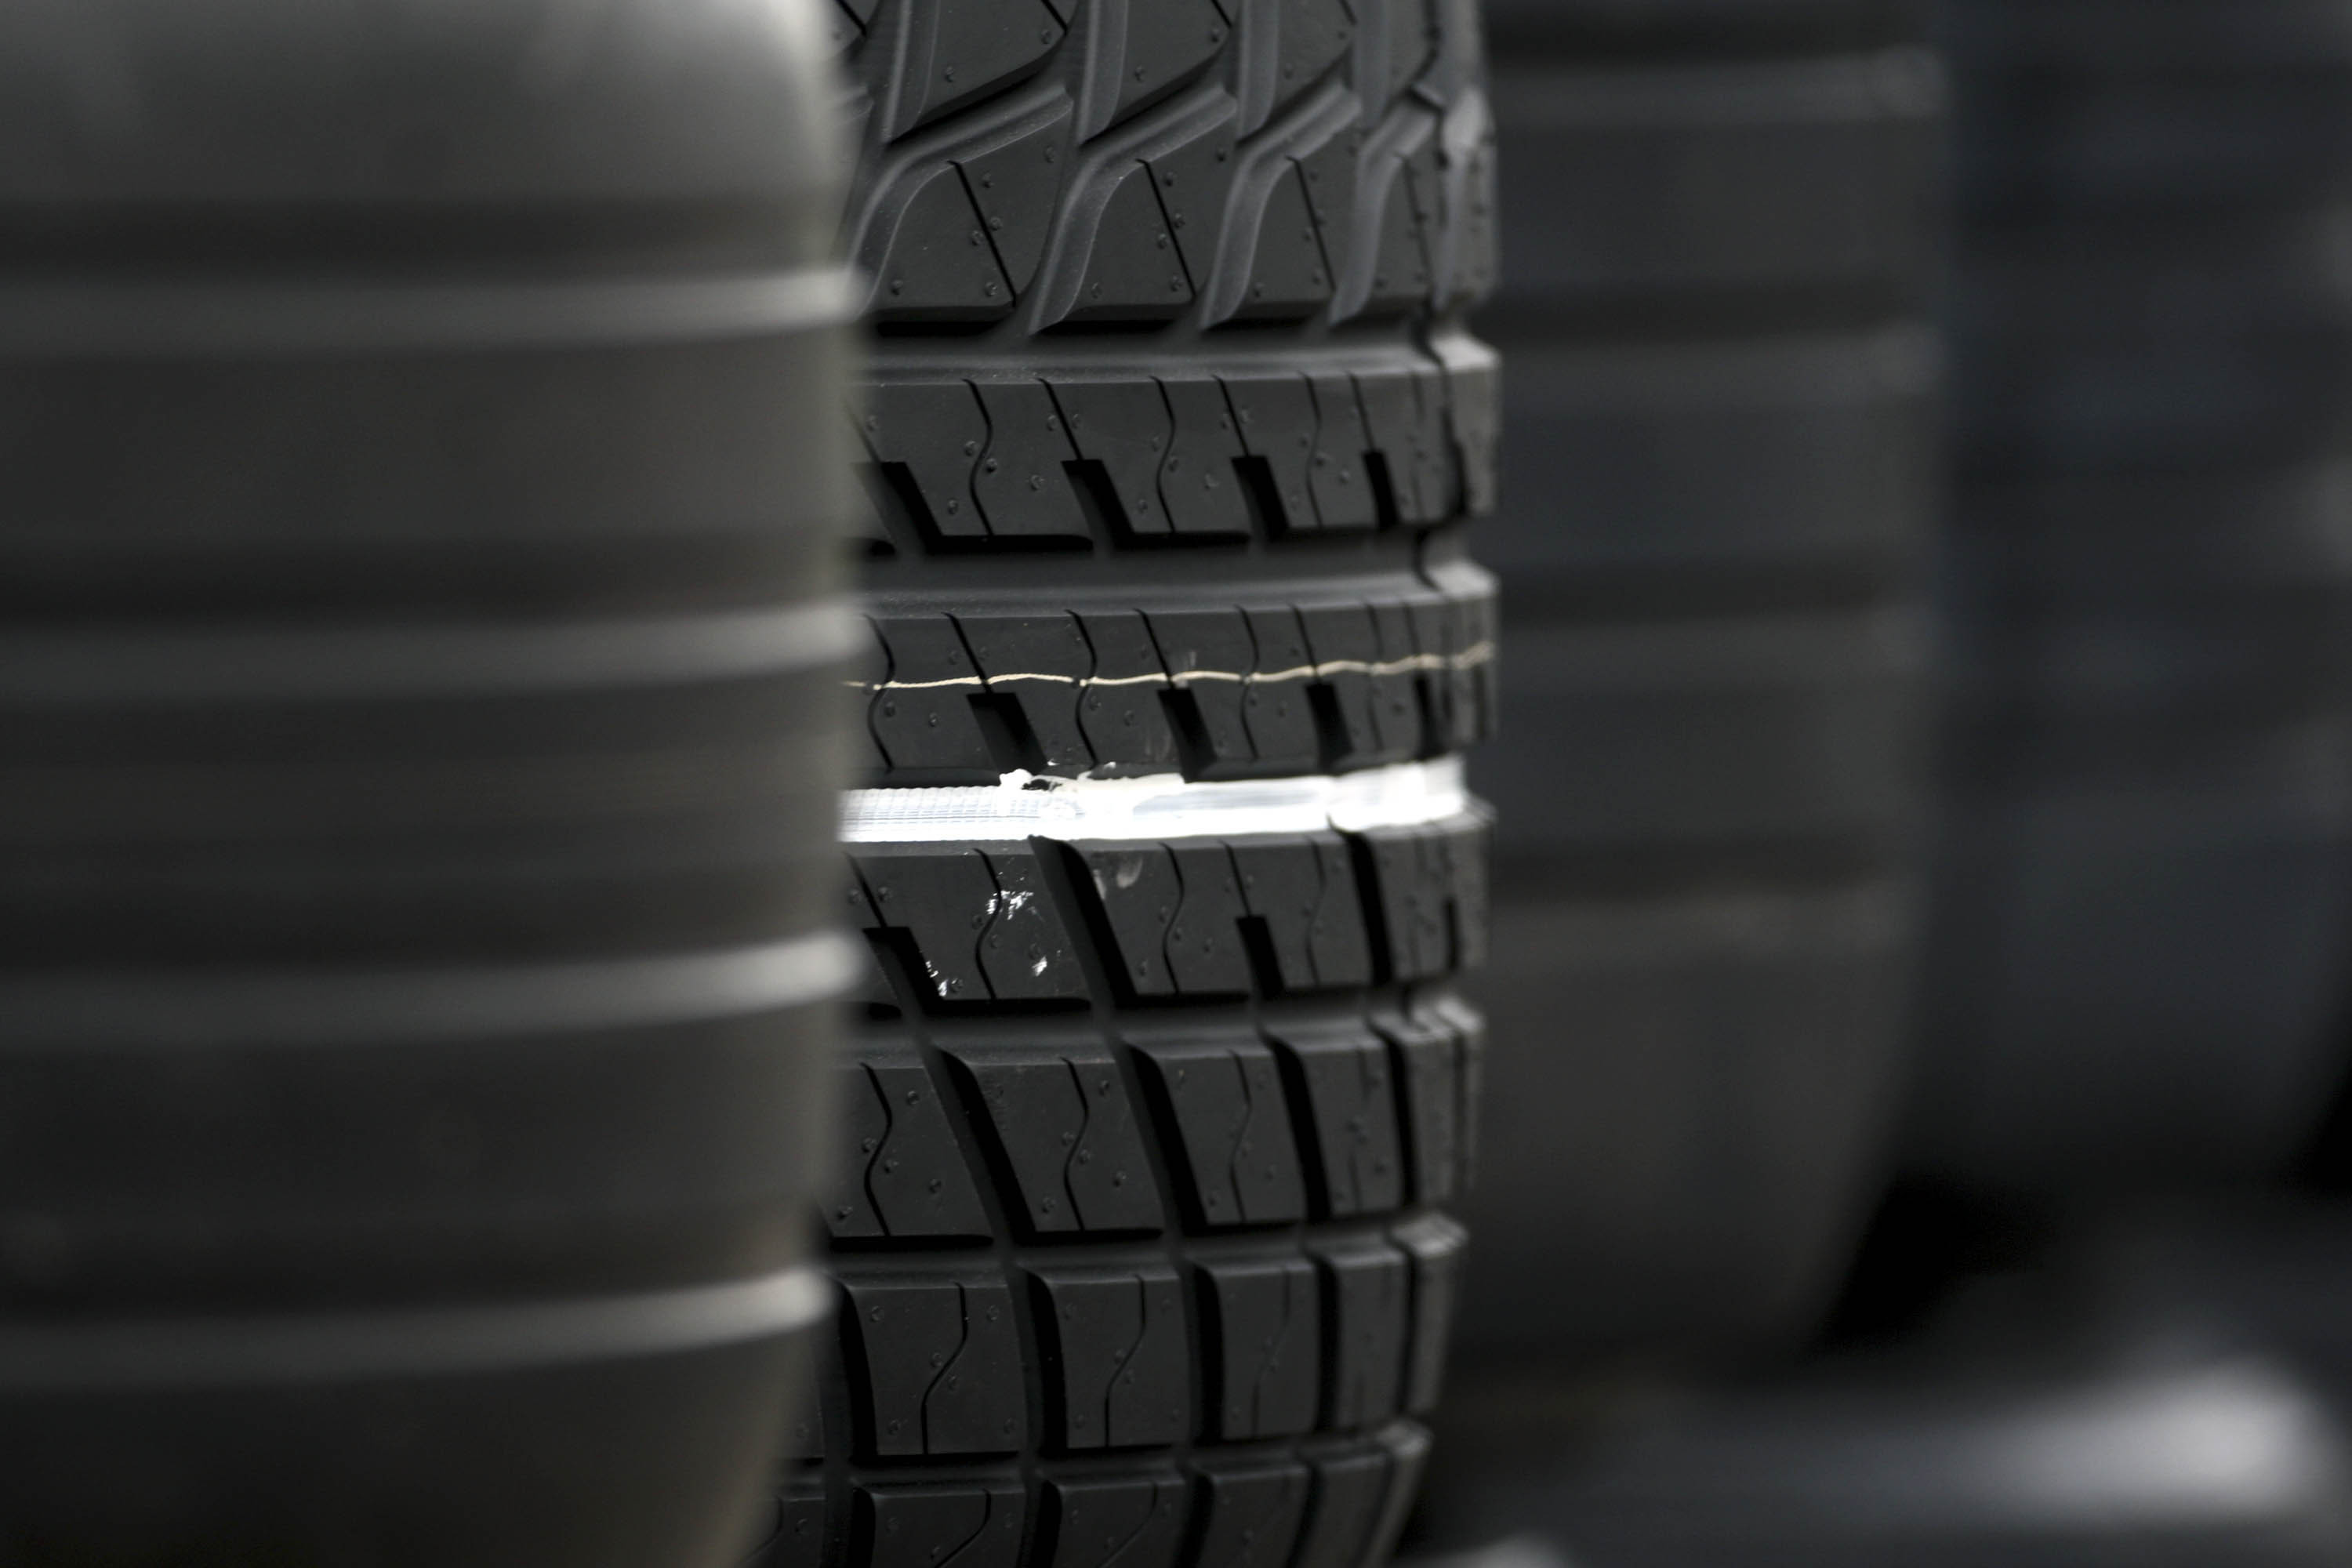 General view of tyres